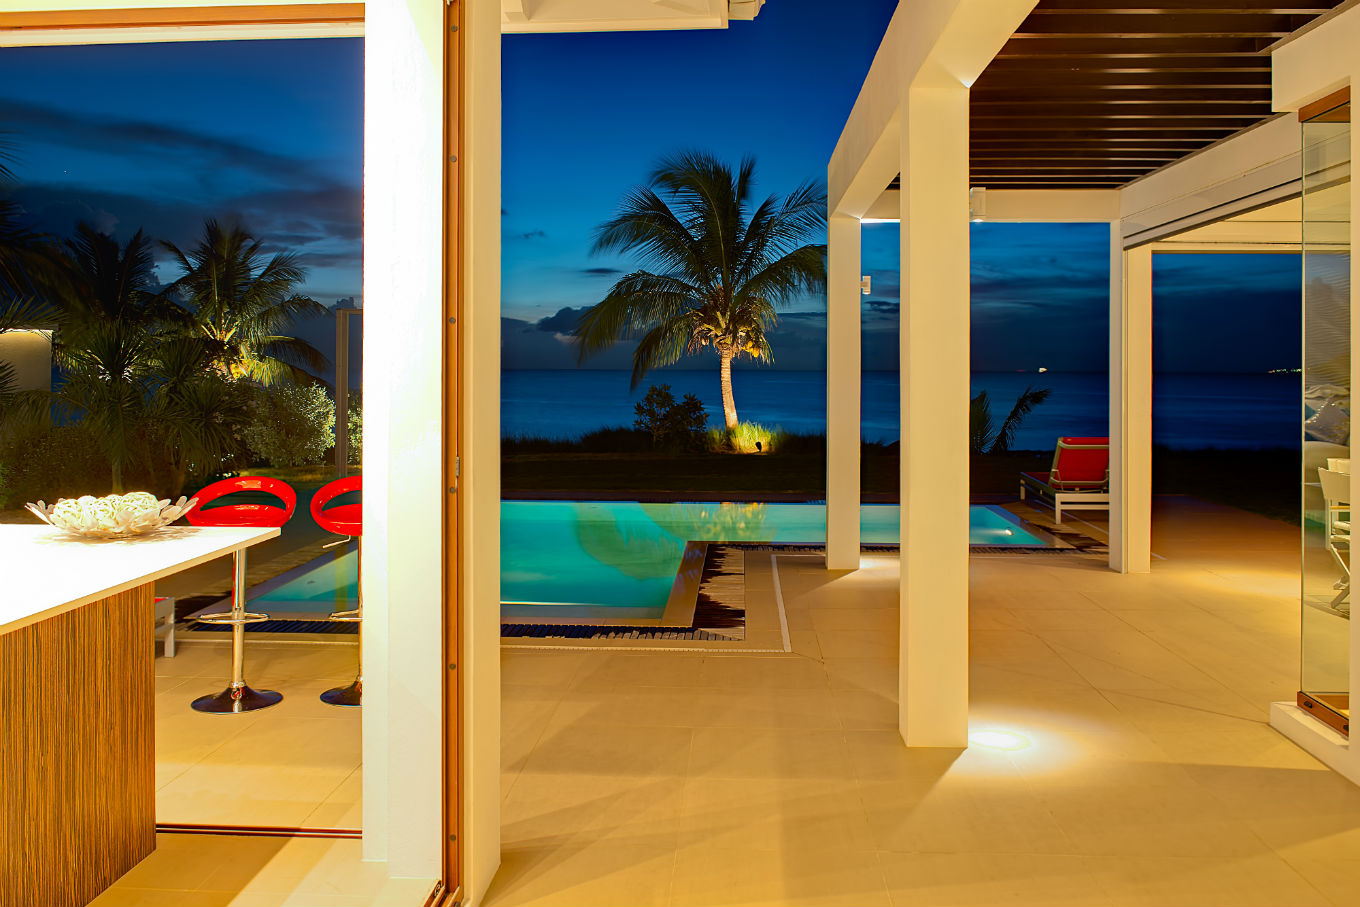 st-kitts-citizenship-by-investment-villa